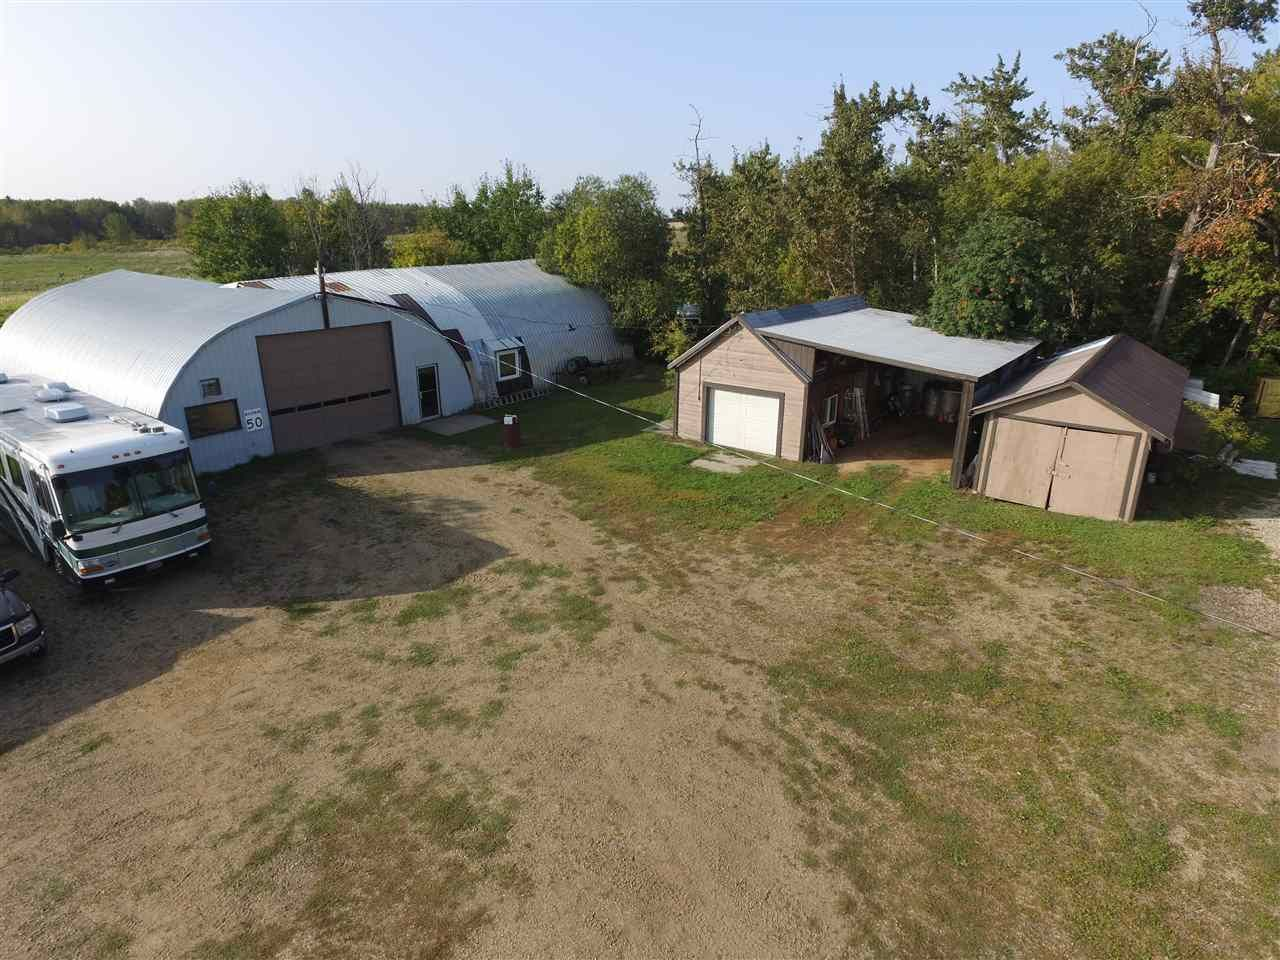 Photo 12: Photos: 472050A Hwy 814: Rural Wetaskiwin County House for sale : MLS®# E4213442